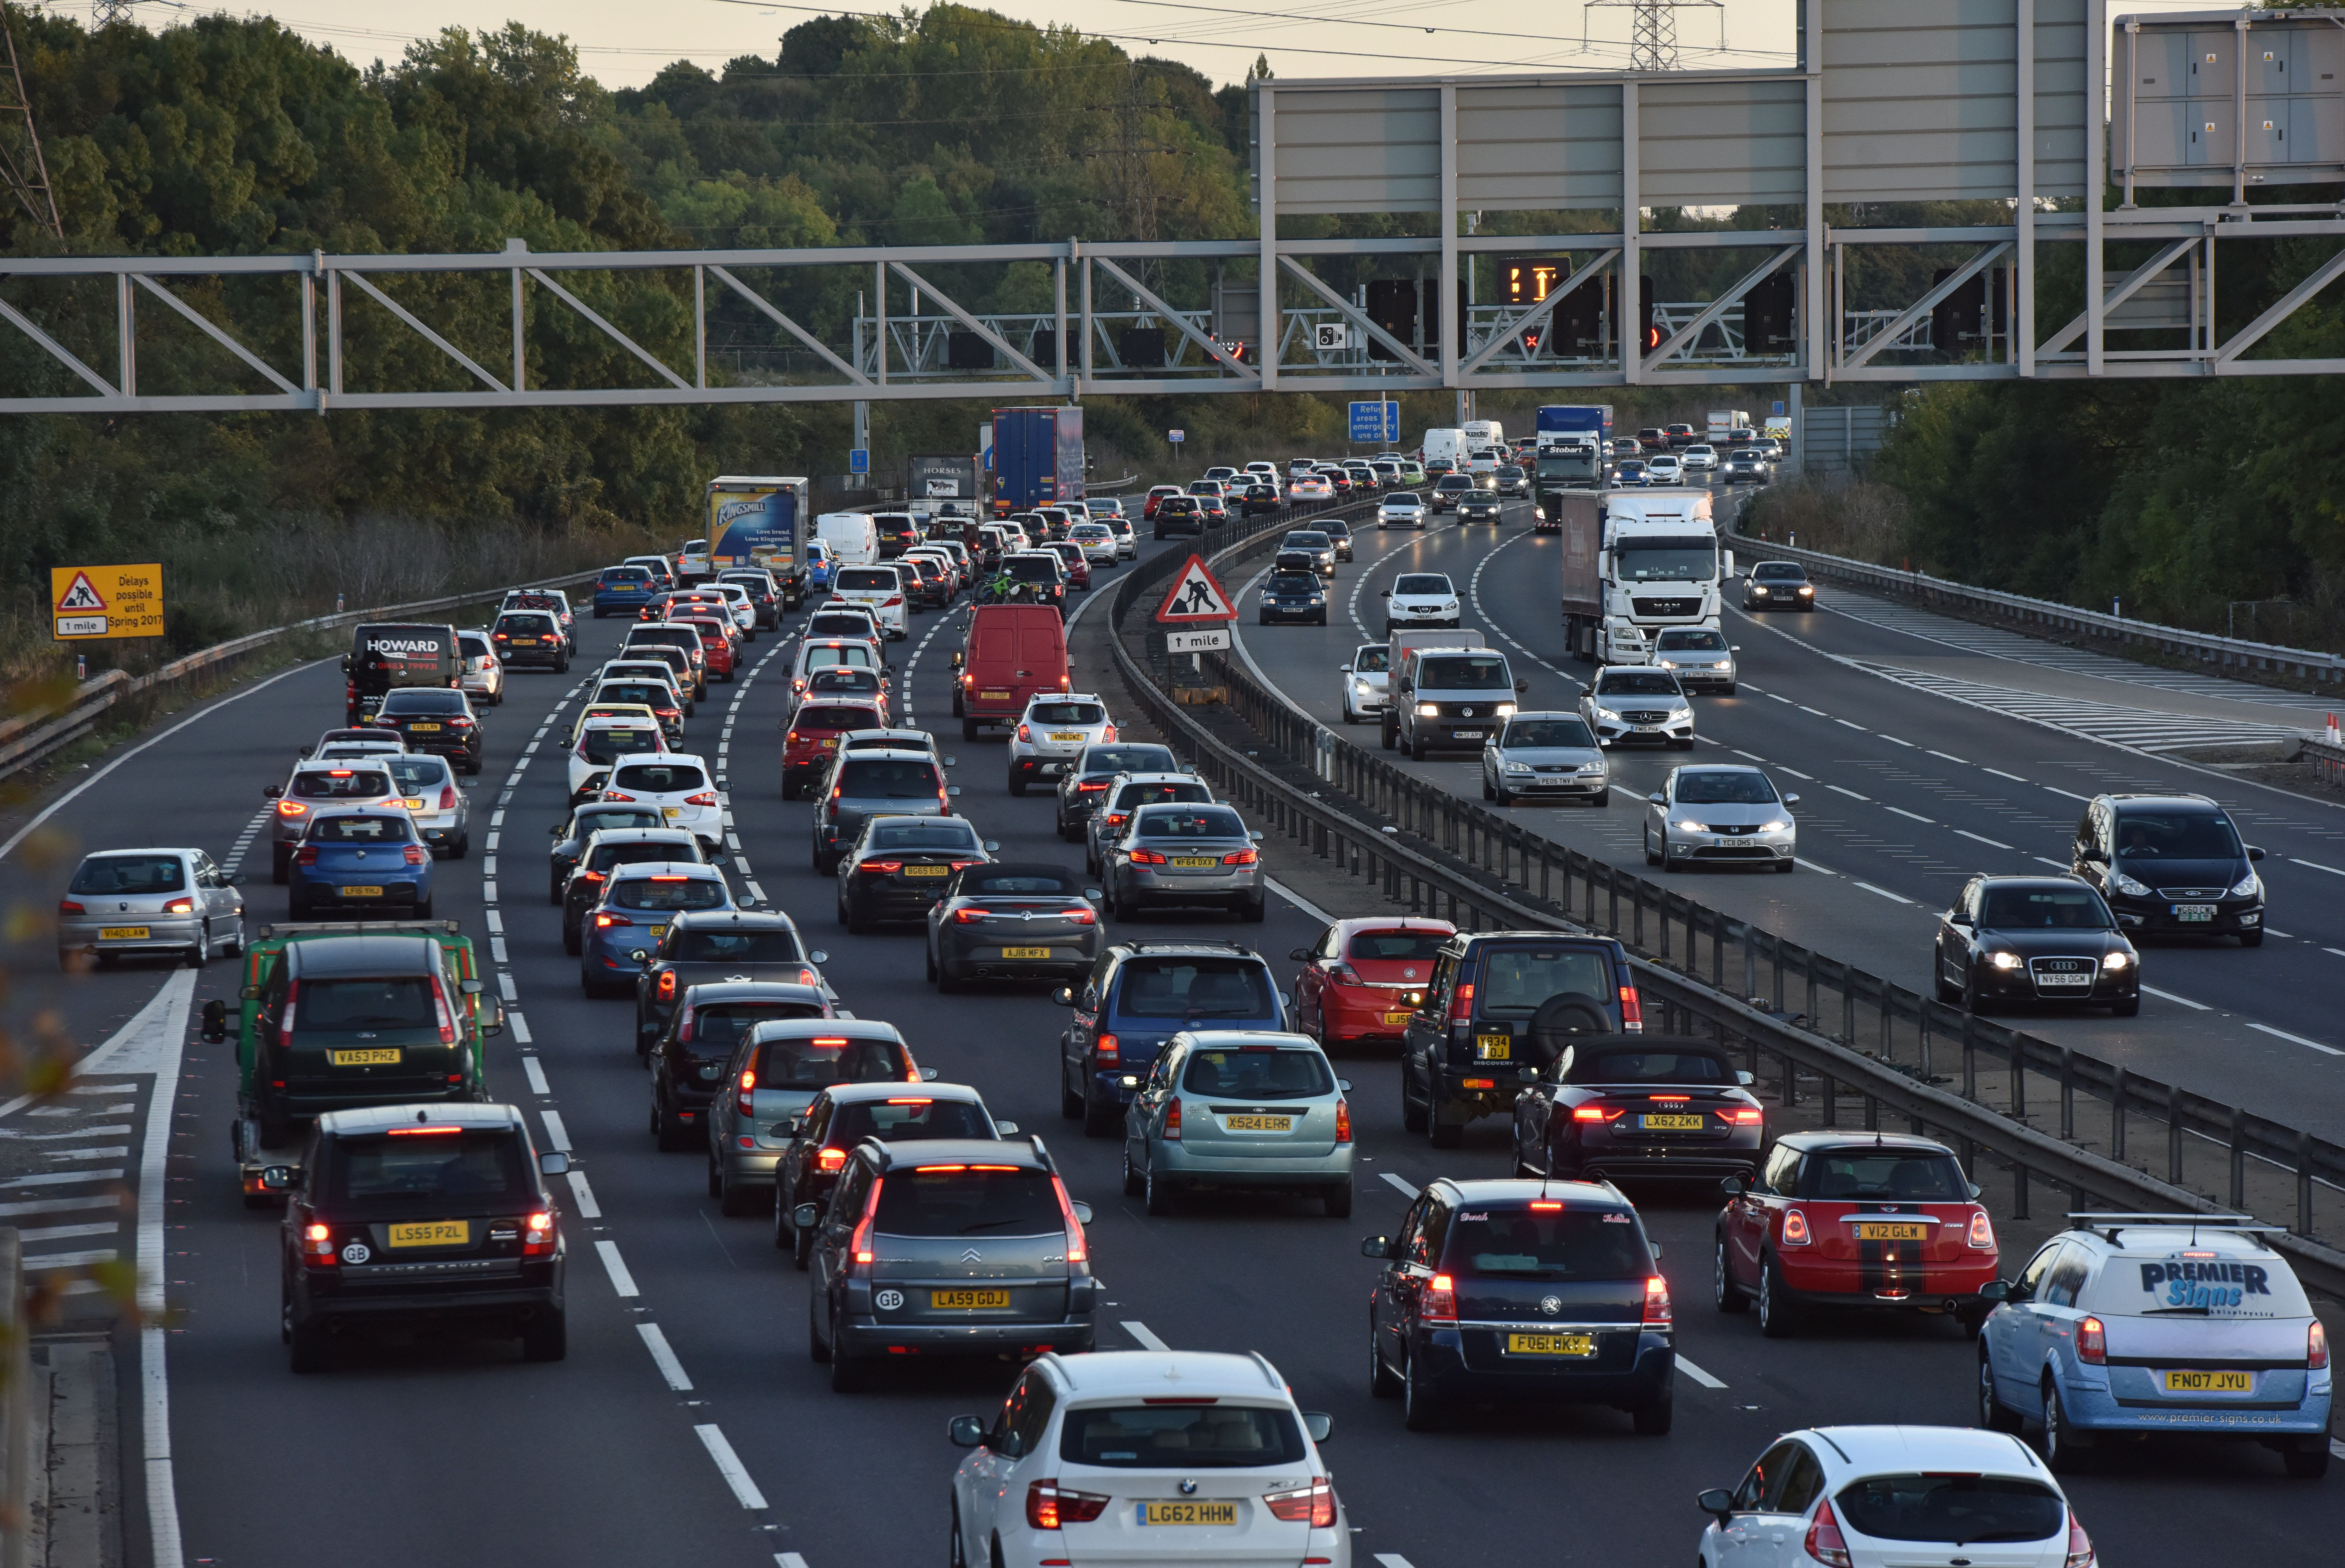 Drivers Warned Of 'Huge Potential For Gridlock' This Bank Holiday Weekend